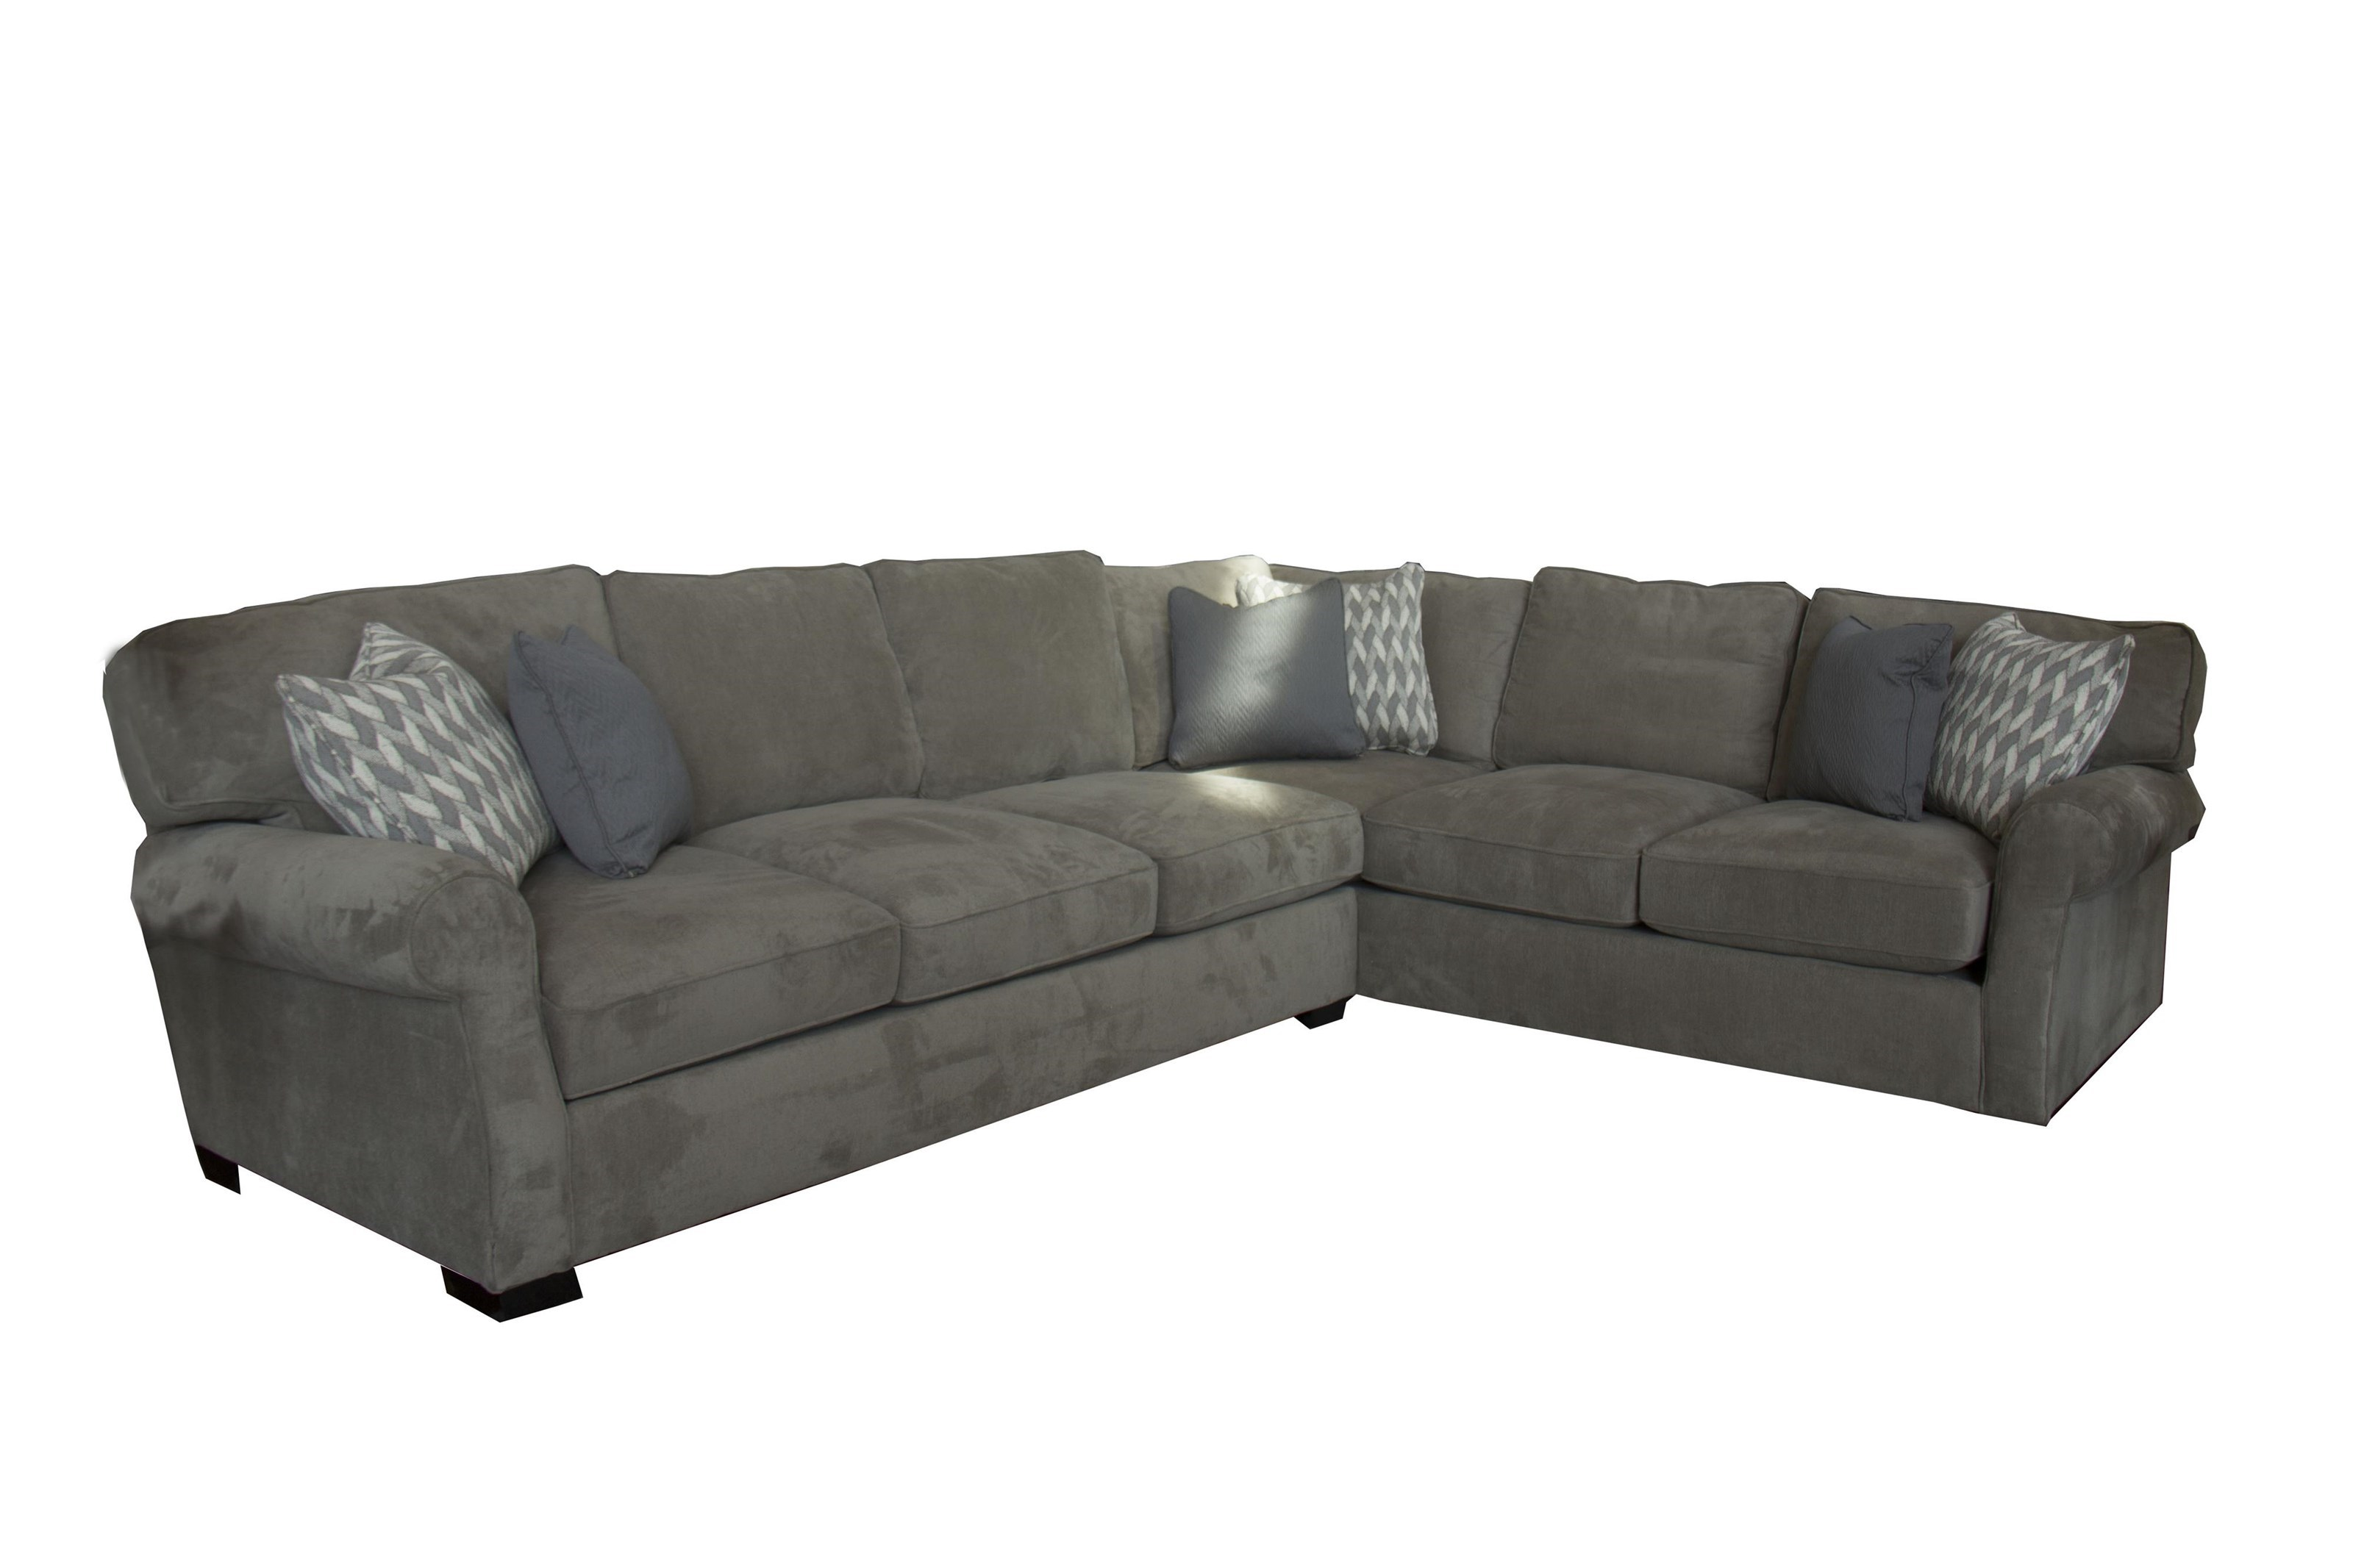 Fairmont Seating Cachet Two Piece Sectional   Great American Home Store    Sectional Modular Components